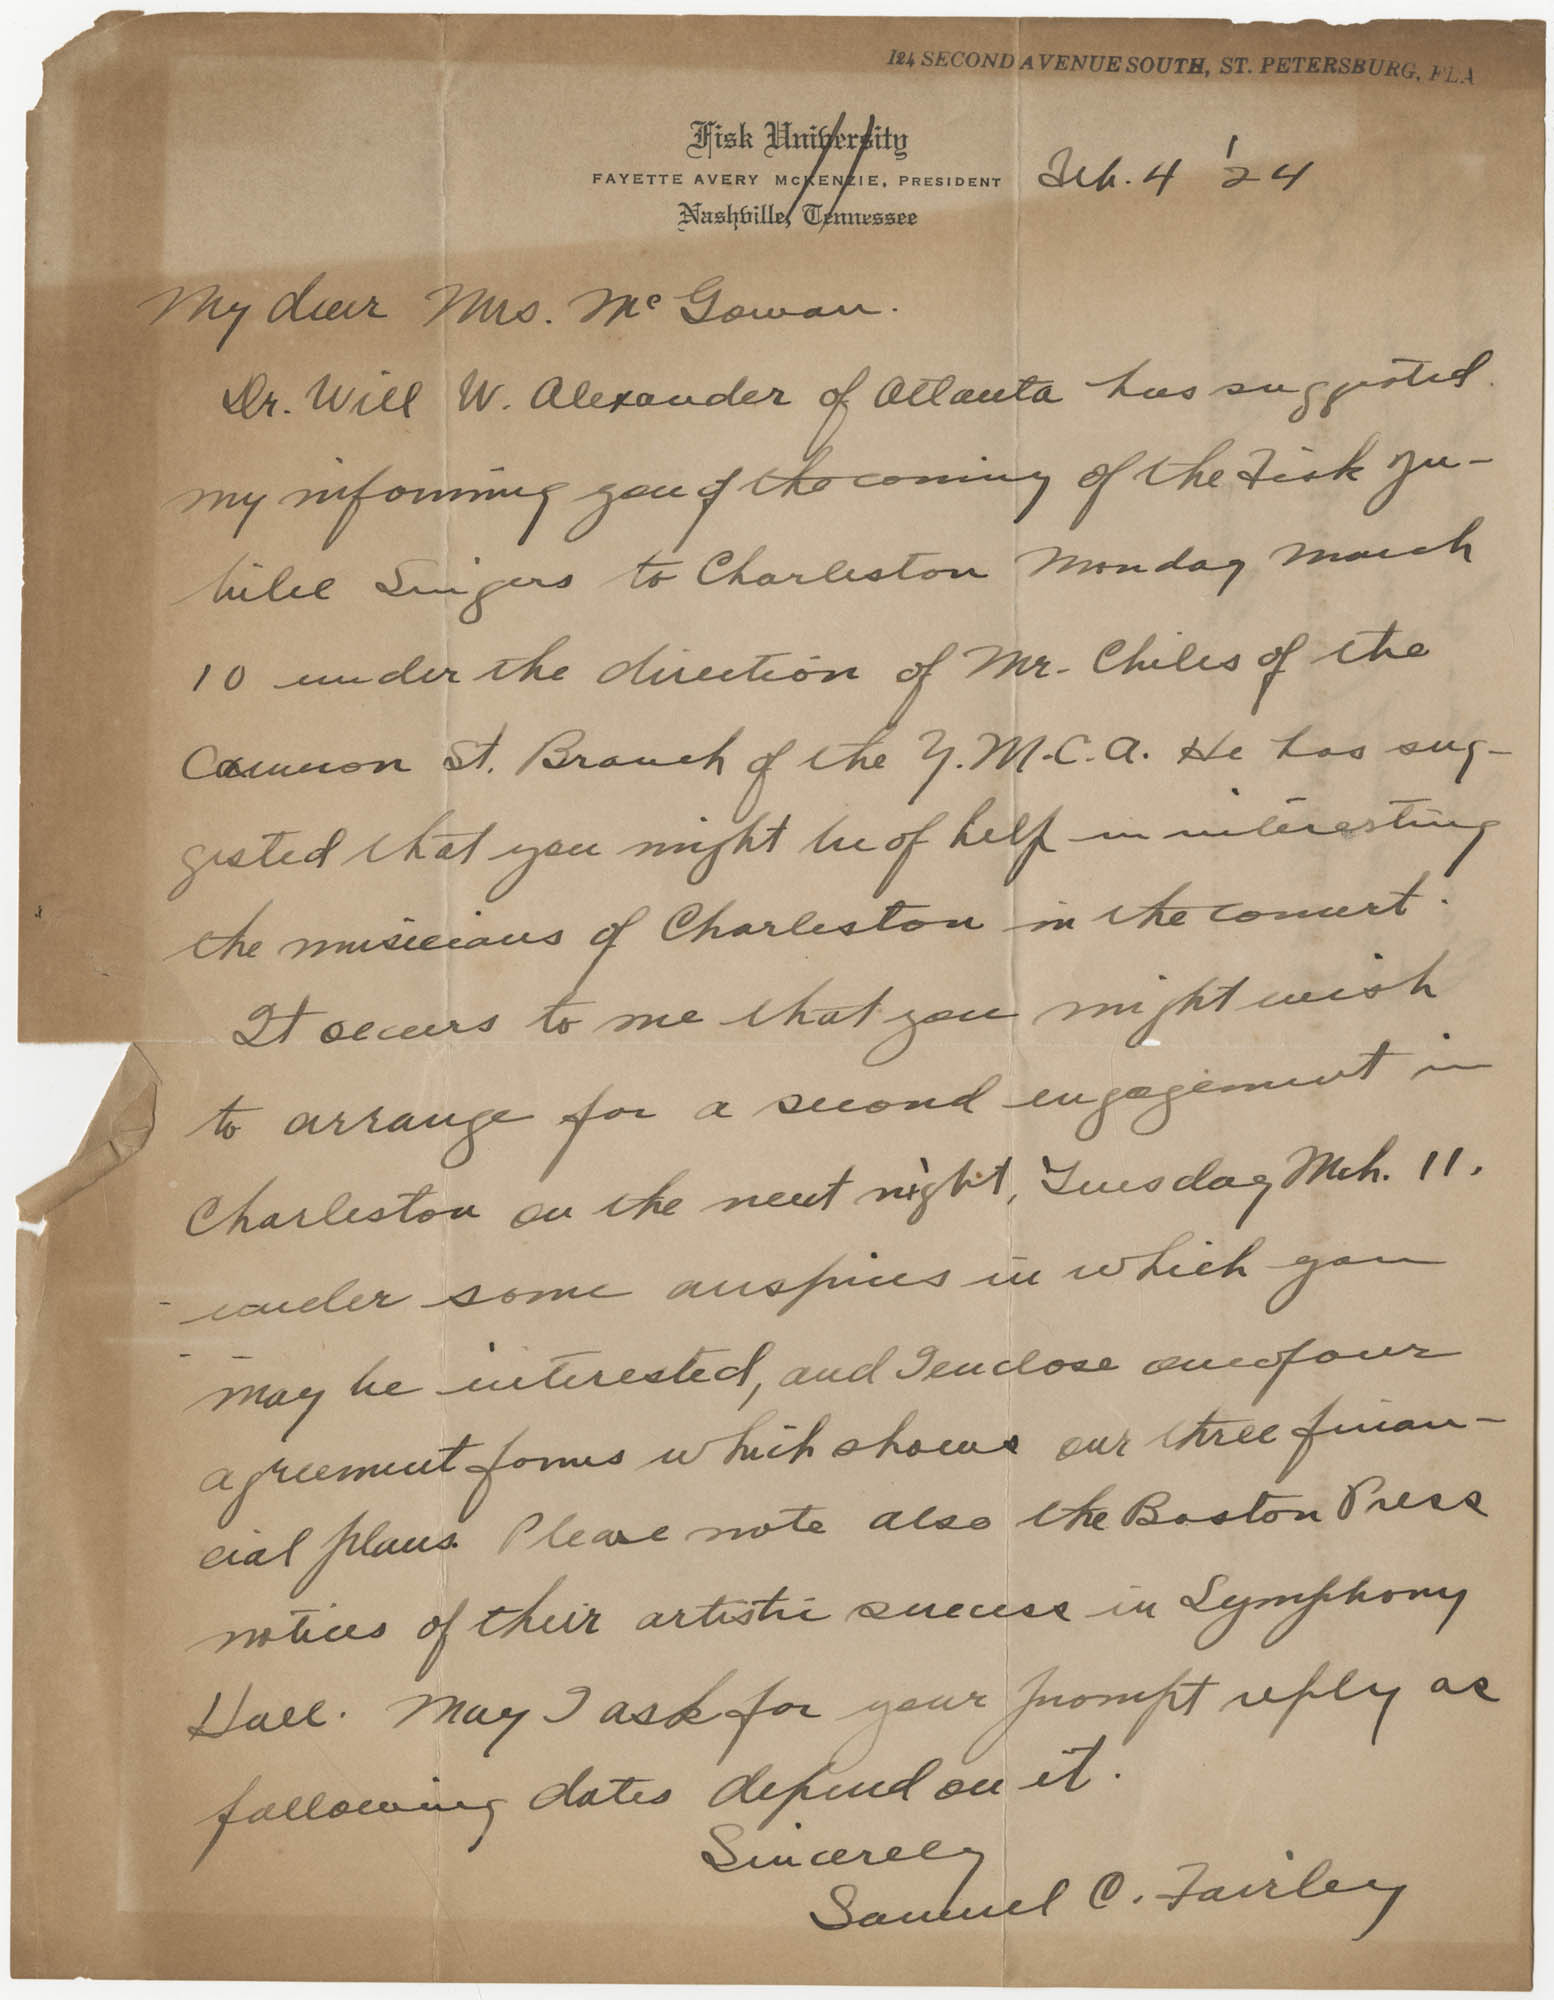 Letter from Samuel C. Fairley to